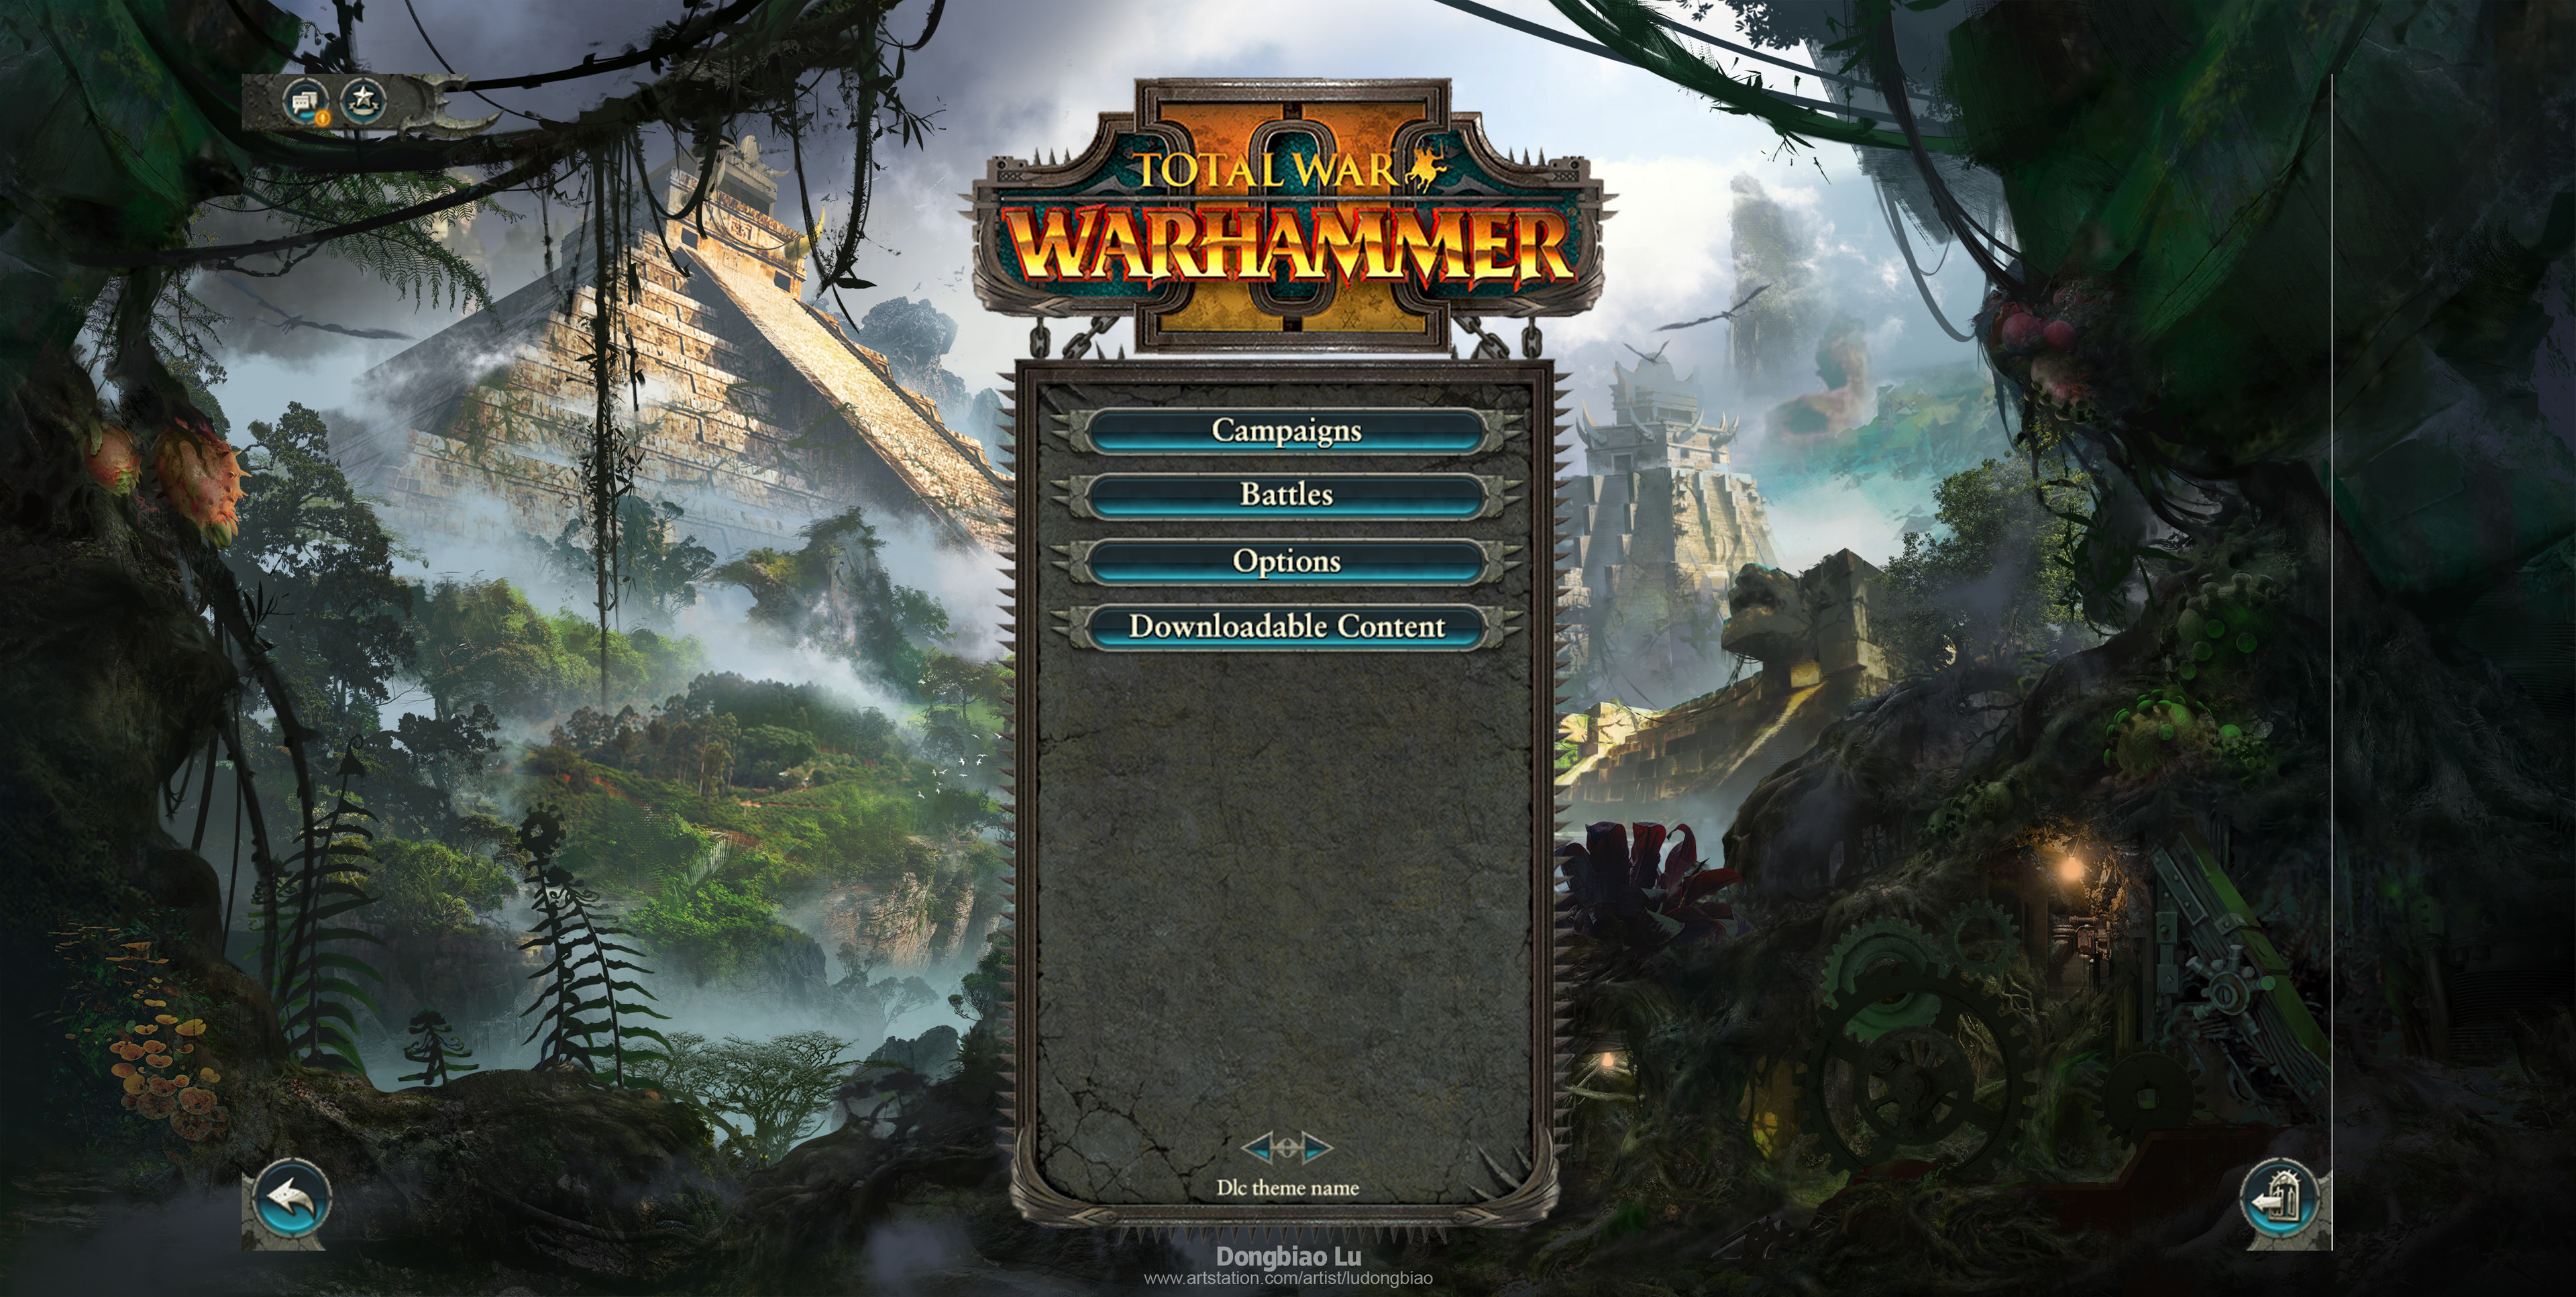 For The Warhammer2